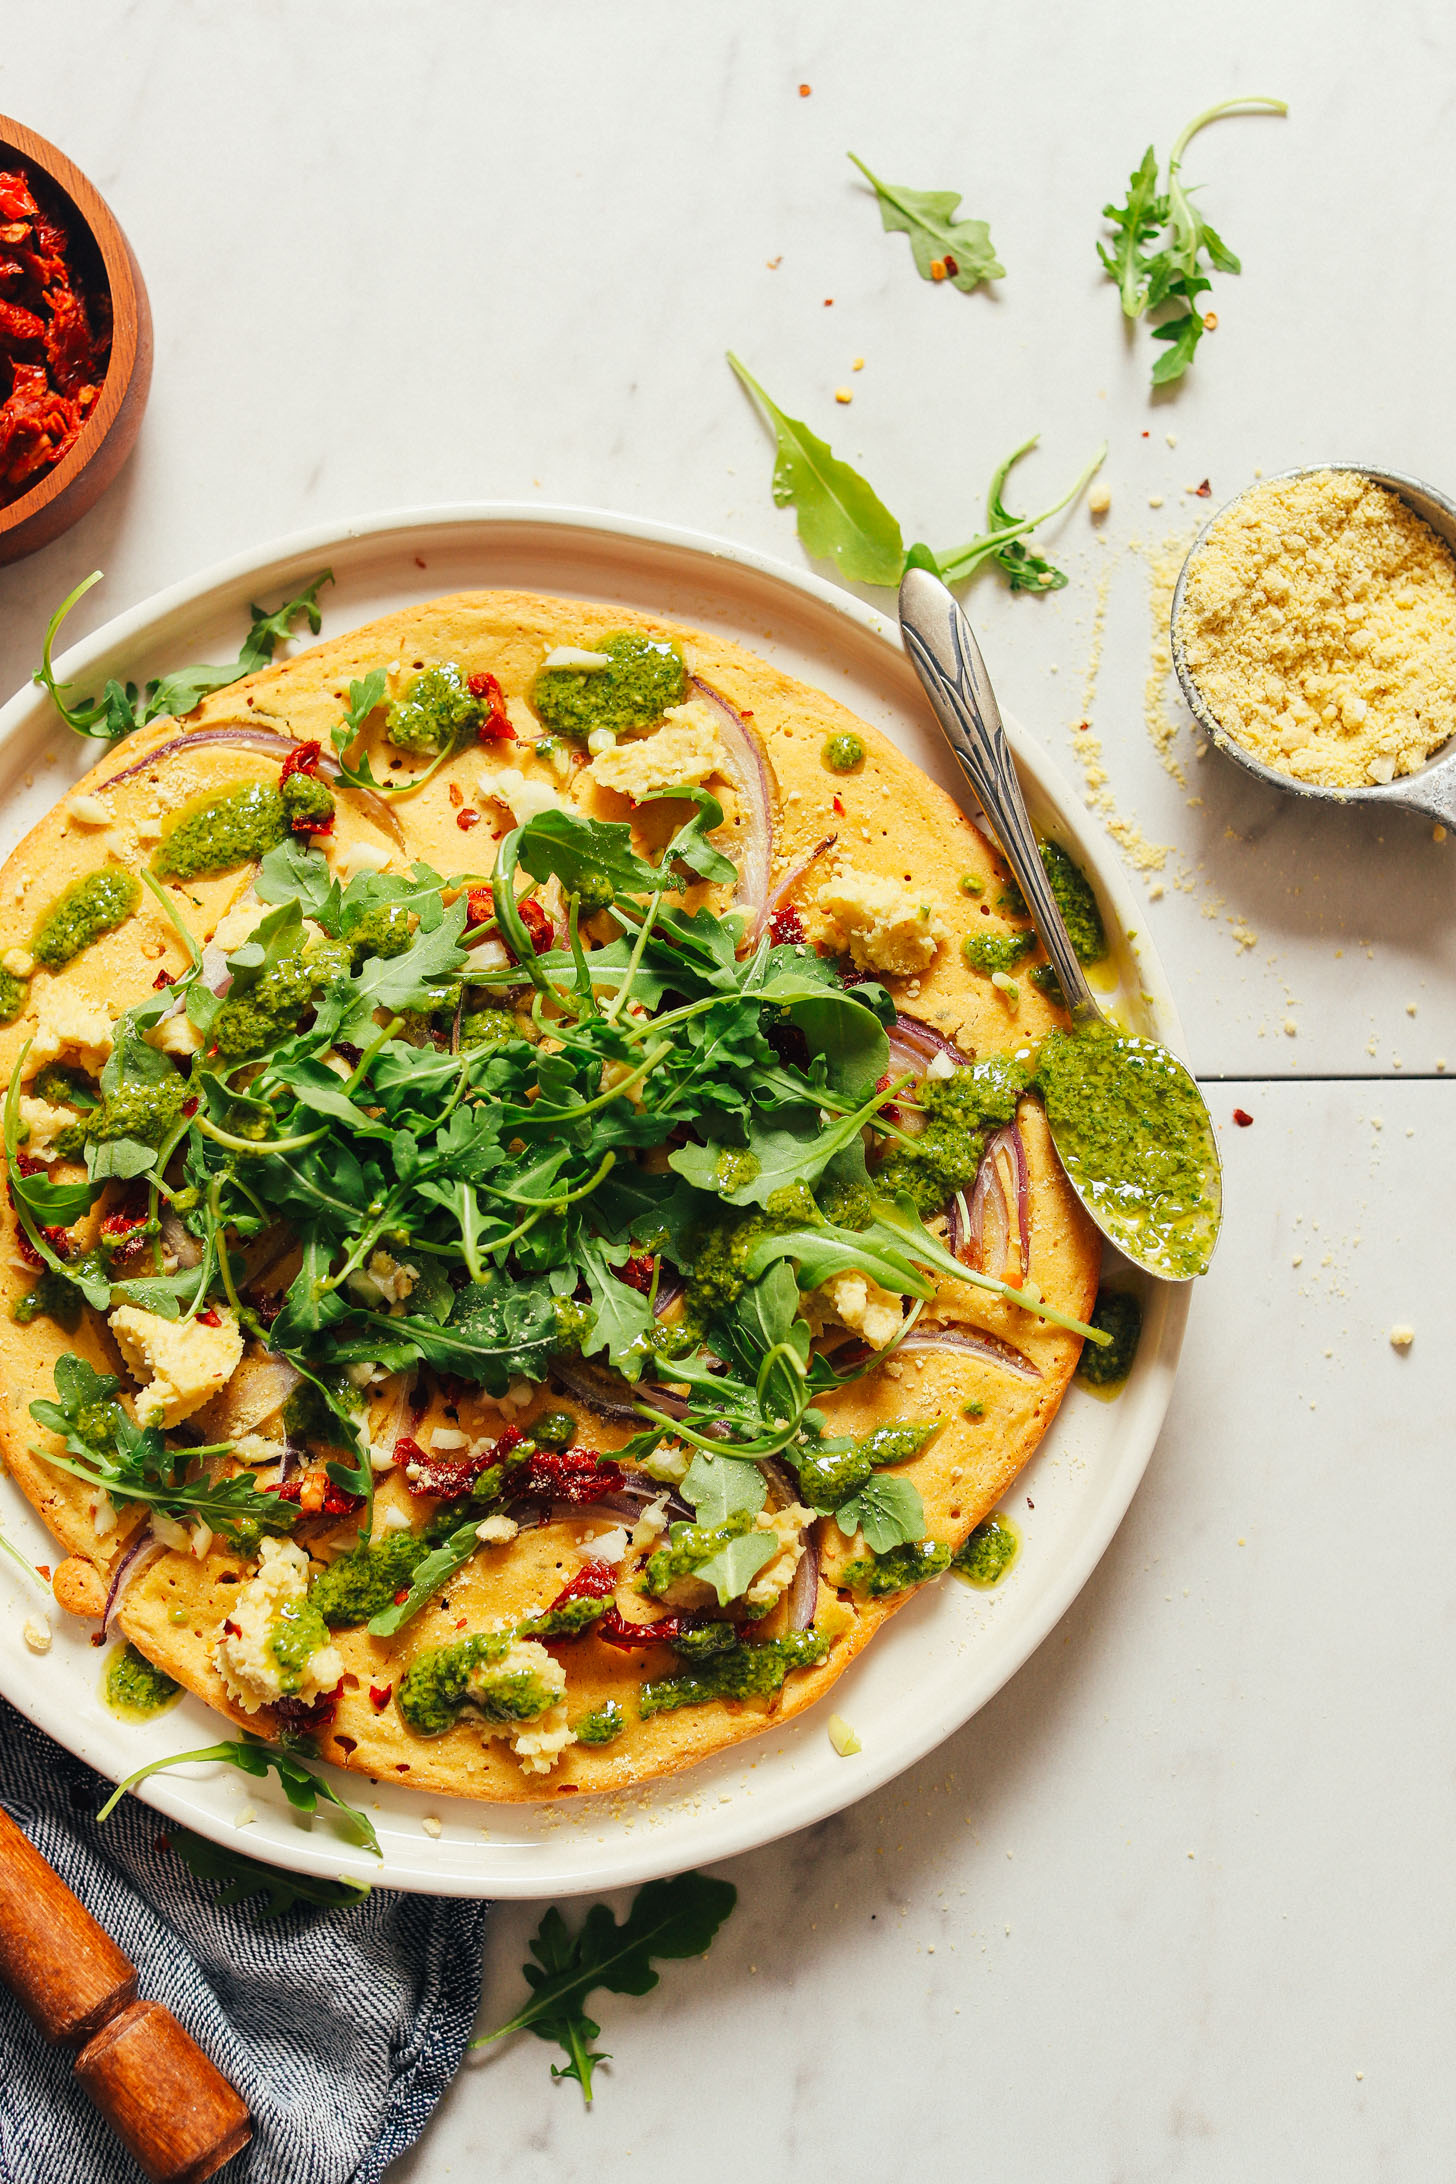 Plate filled with a beautiful gluten-free vegan Socca Pizza with pesto, sun-dried tomatoes, and arugula